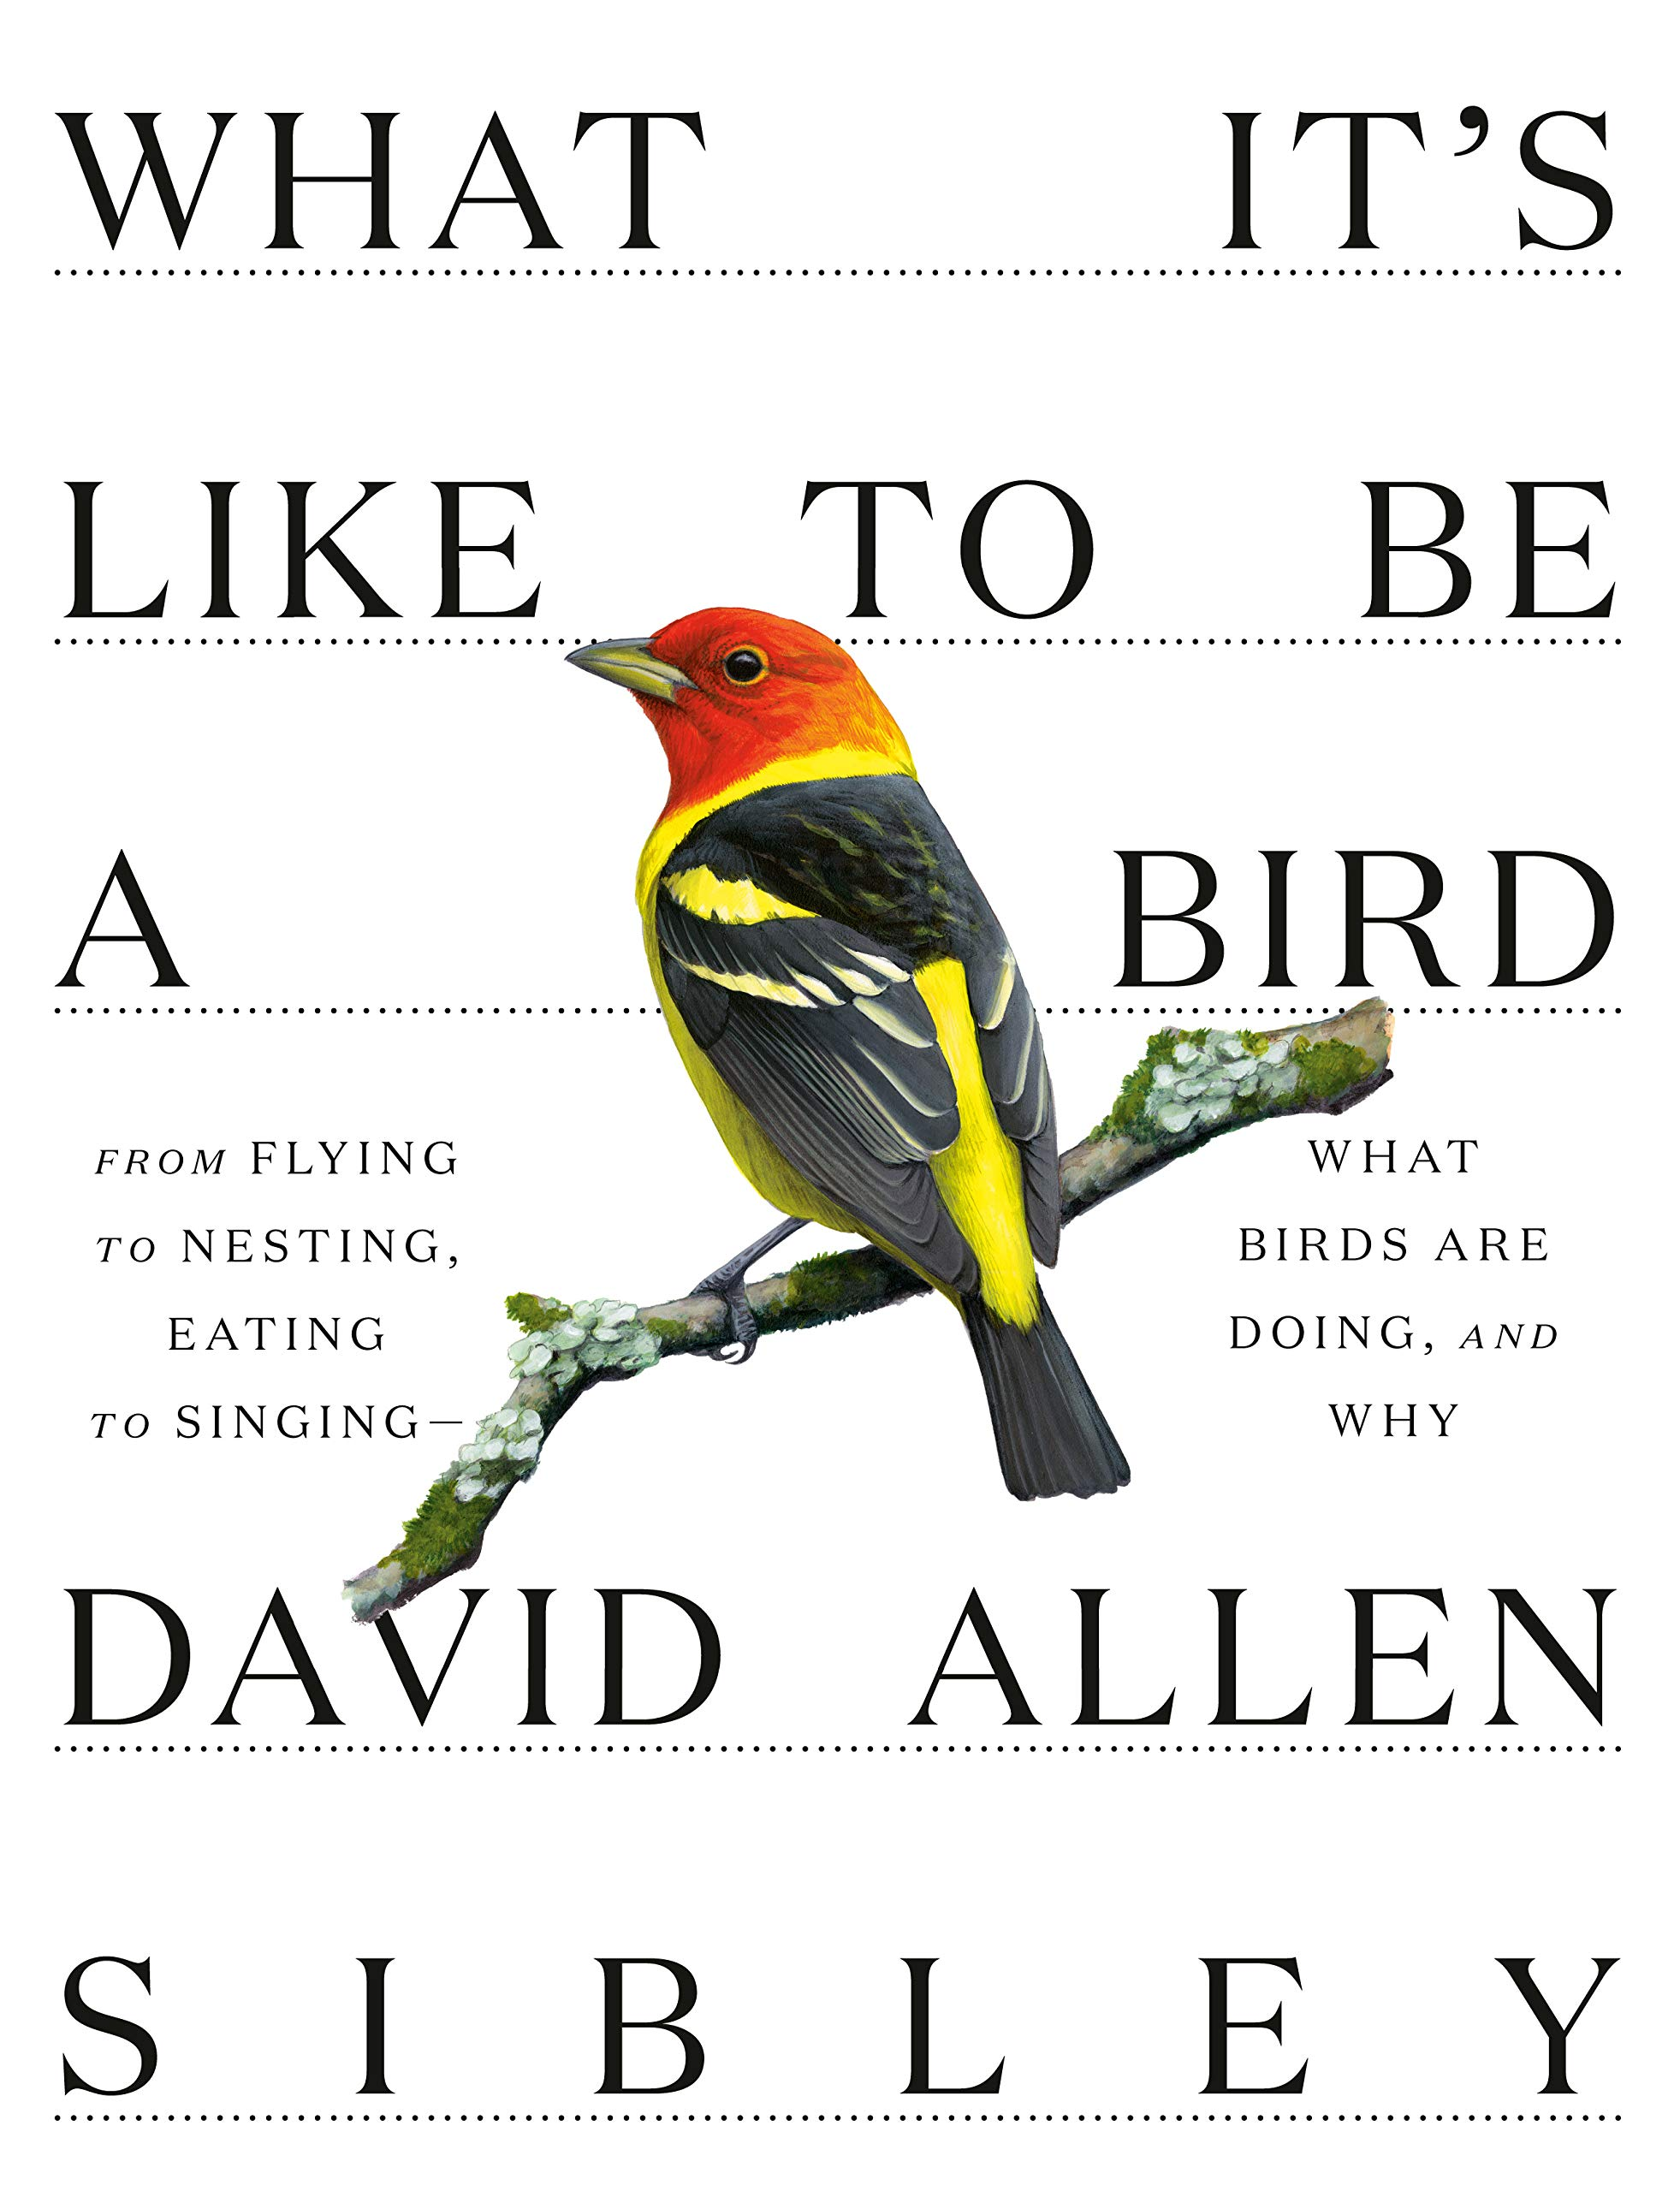 What It's Like to Be a Bird: From Flying to Nesting, Eating to Singing–What Birds Are Doing, and Why